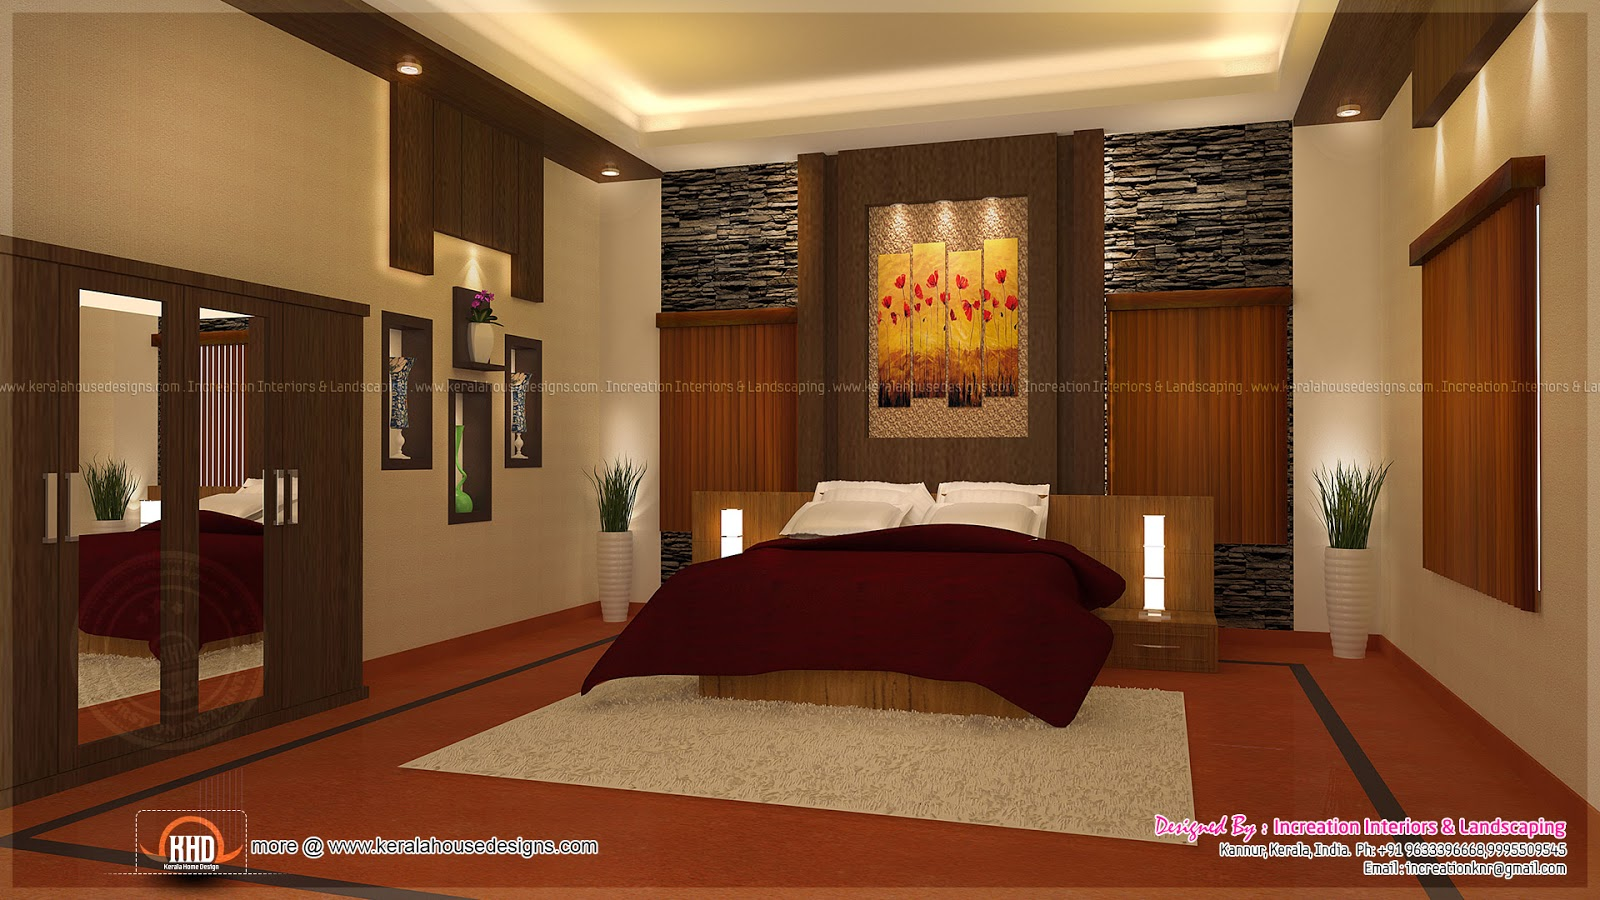 House interior ideas in 3d rendering home kerala plans for Mansion interior design